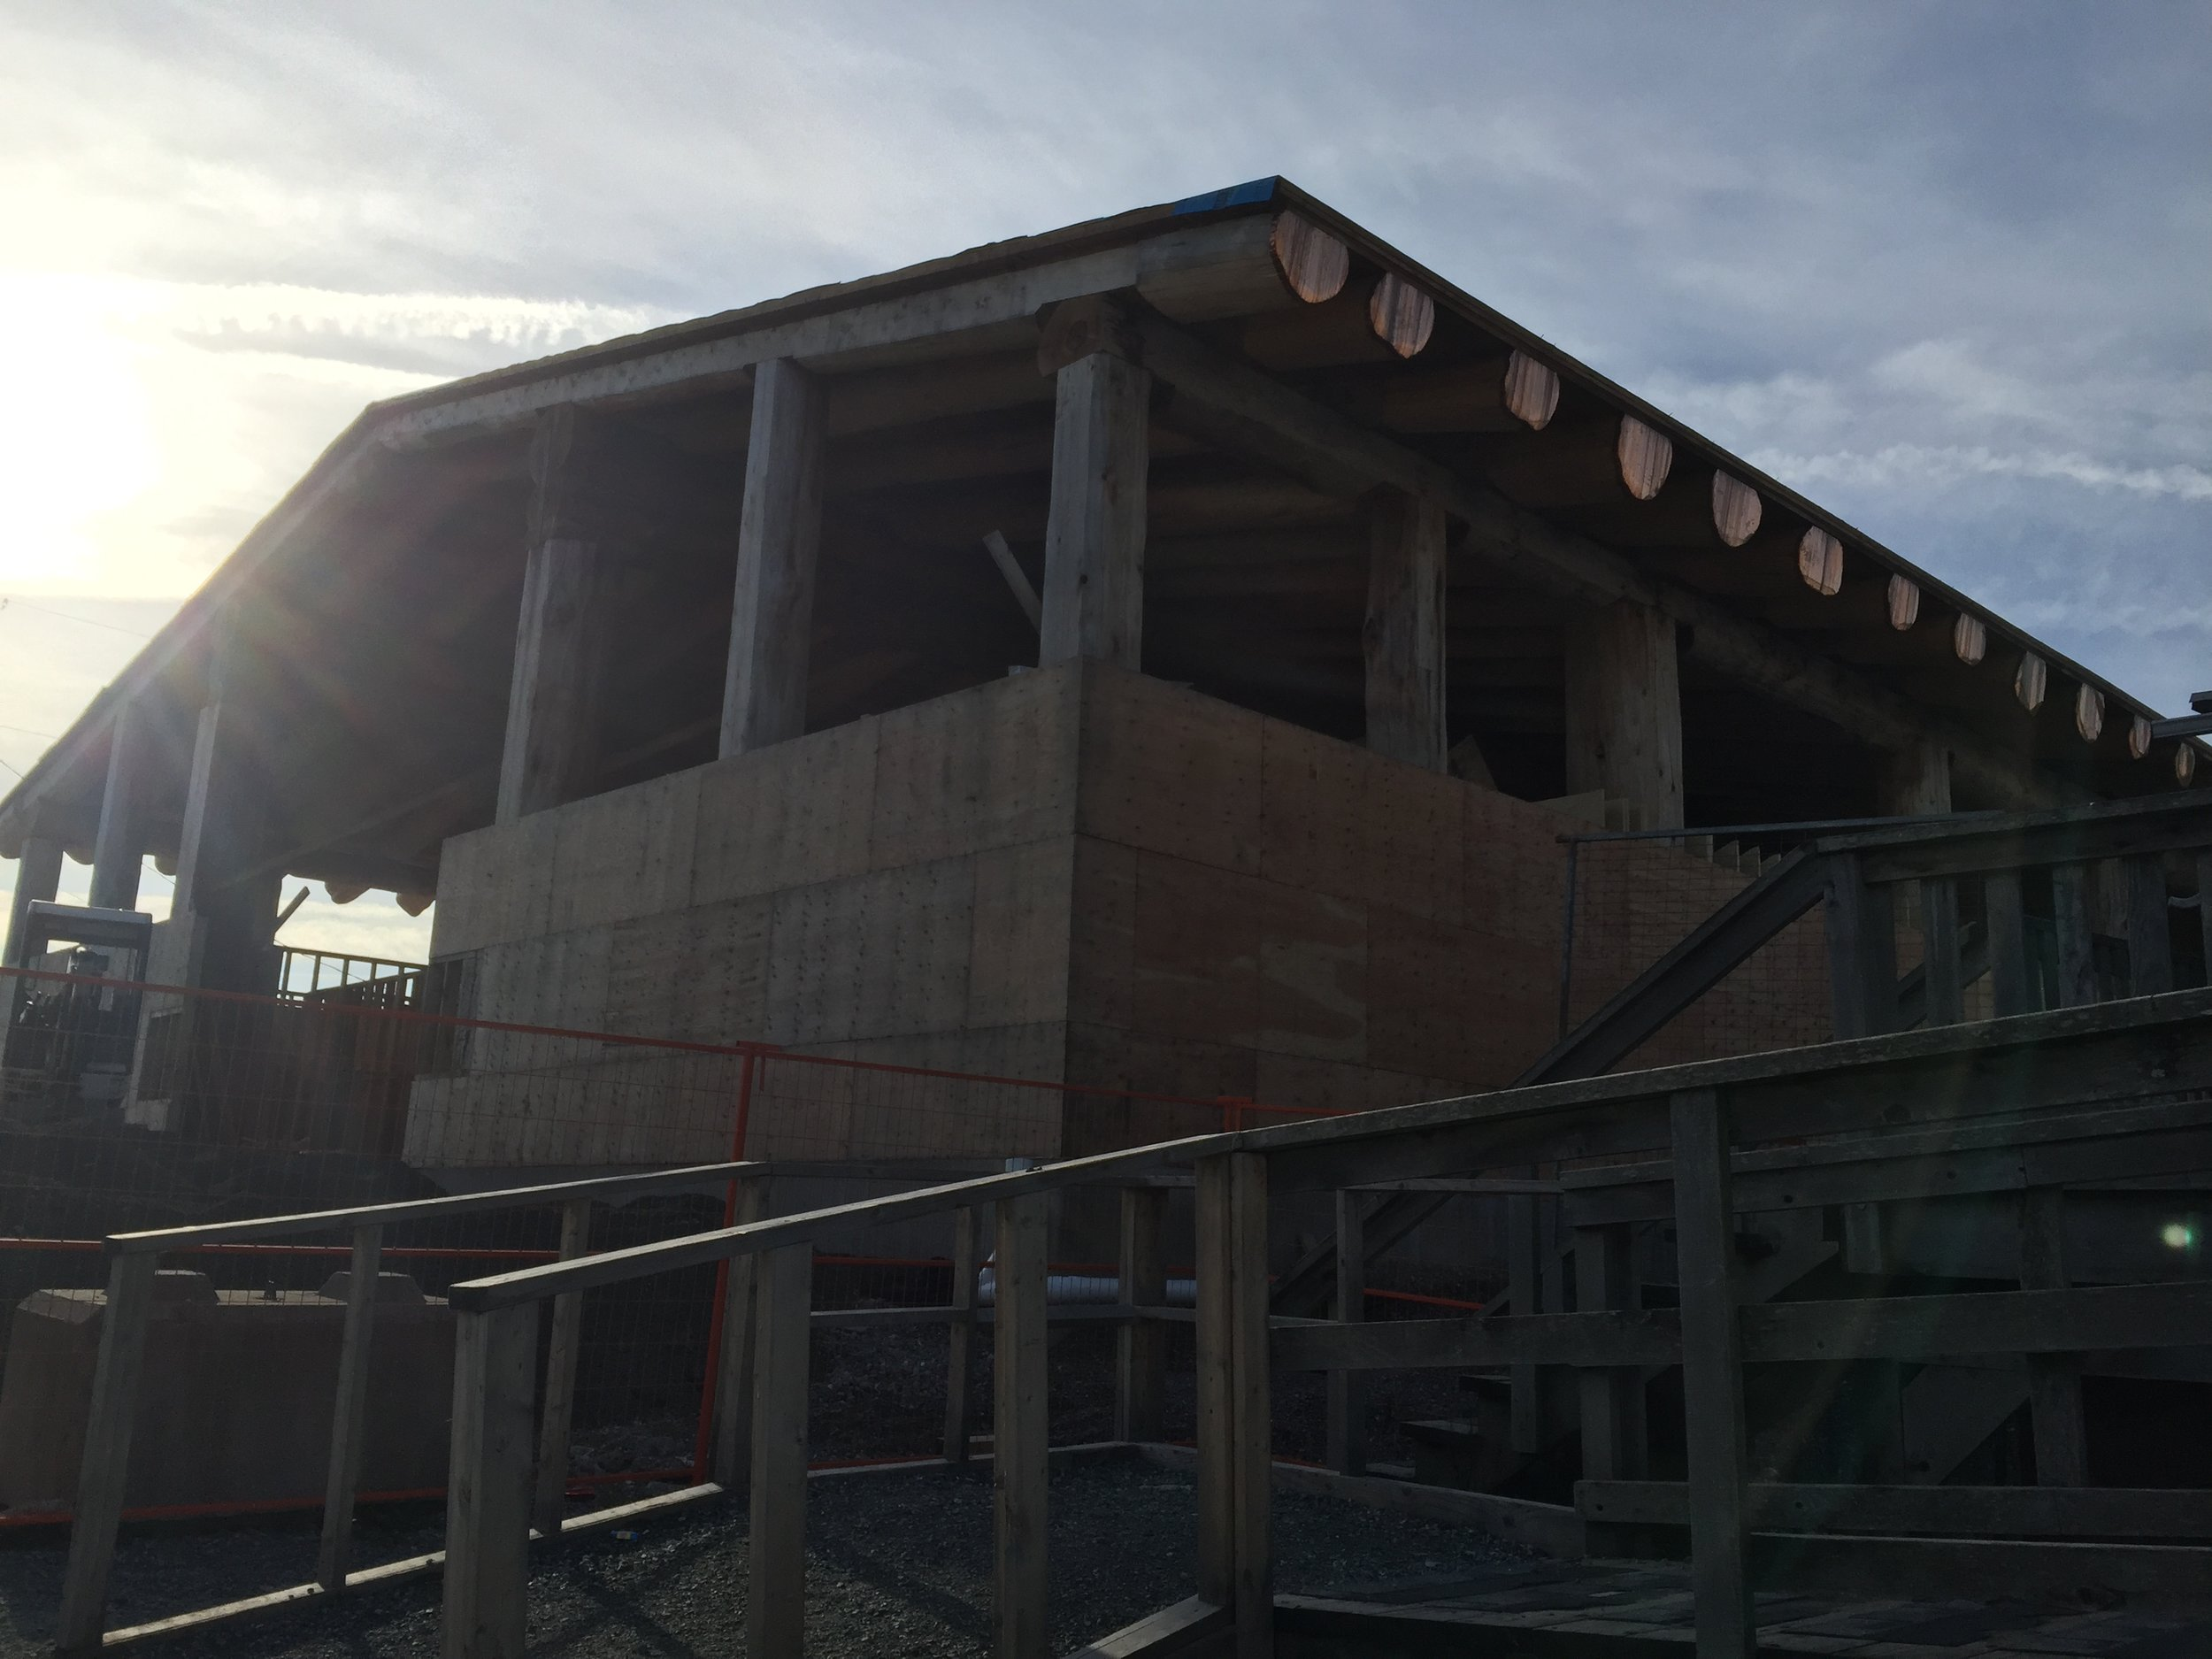 Notice the copper ends of the roof logs on the new BIG HOUSE being constructed!